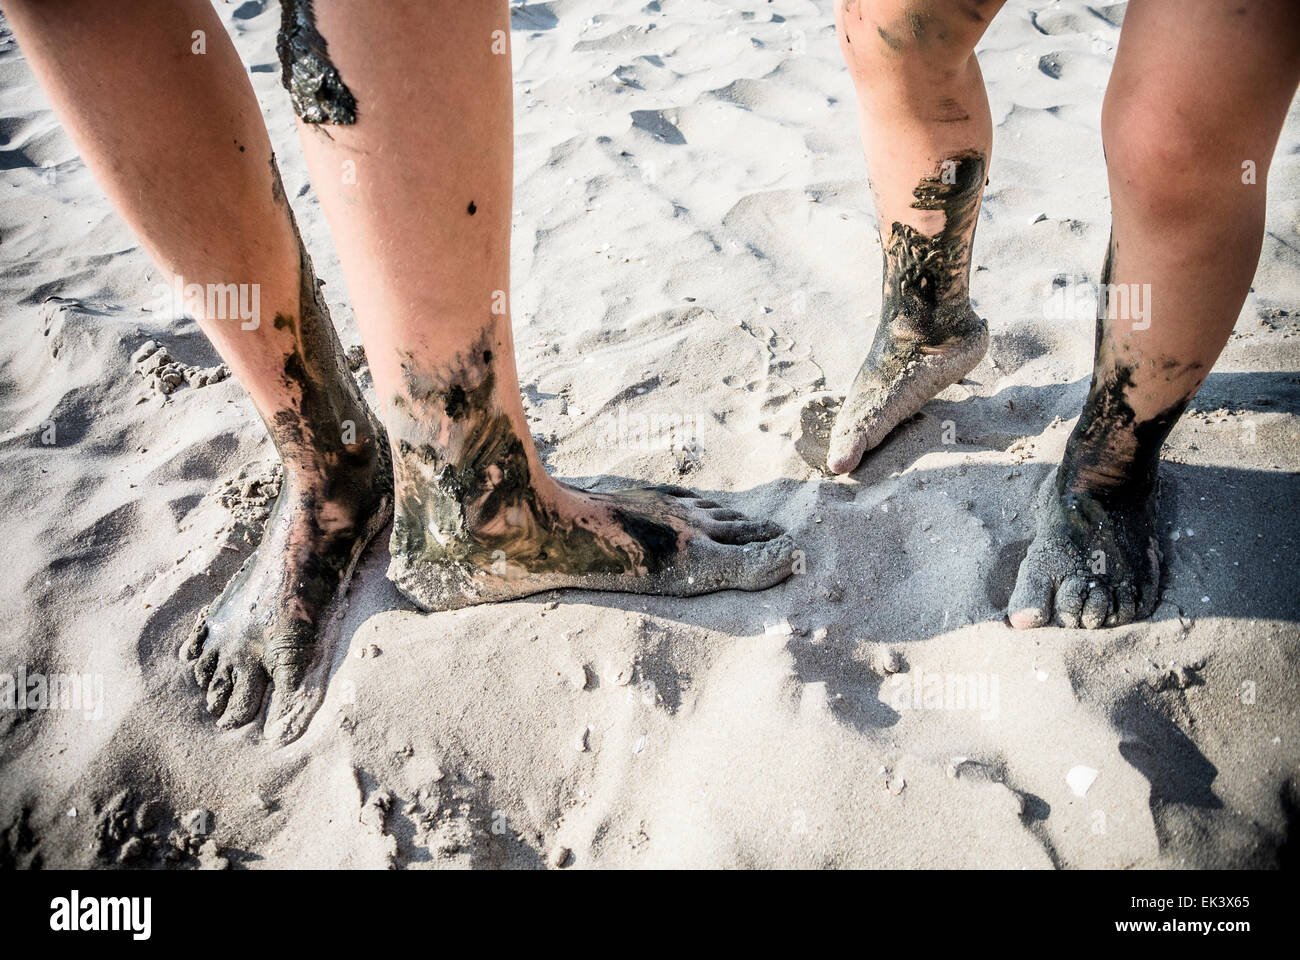 dirty feet - Stock Image